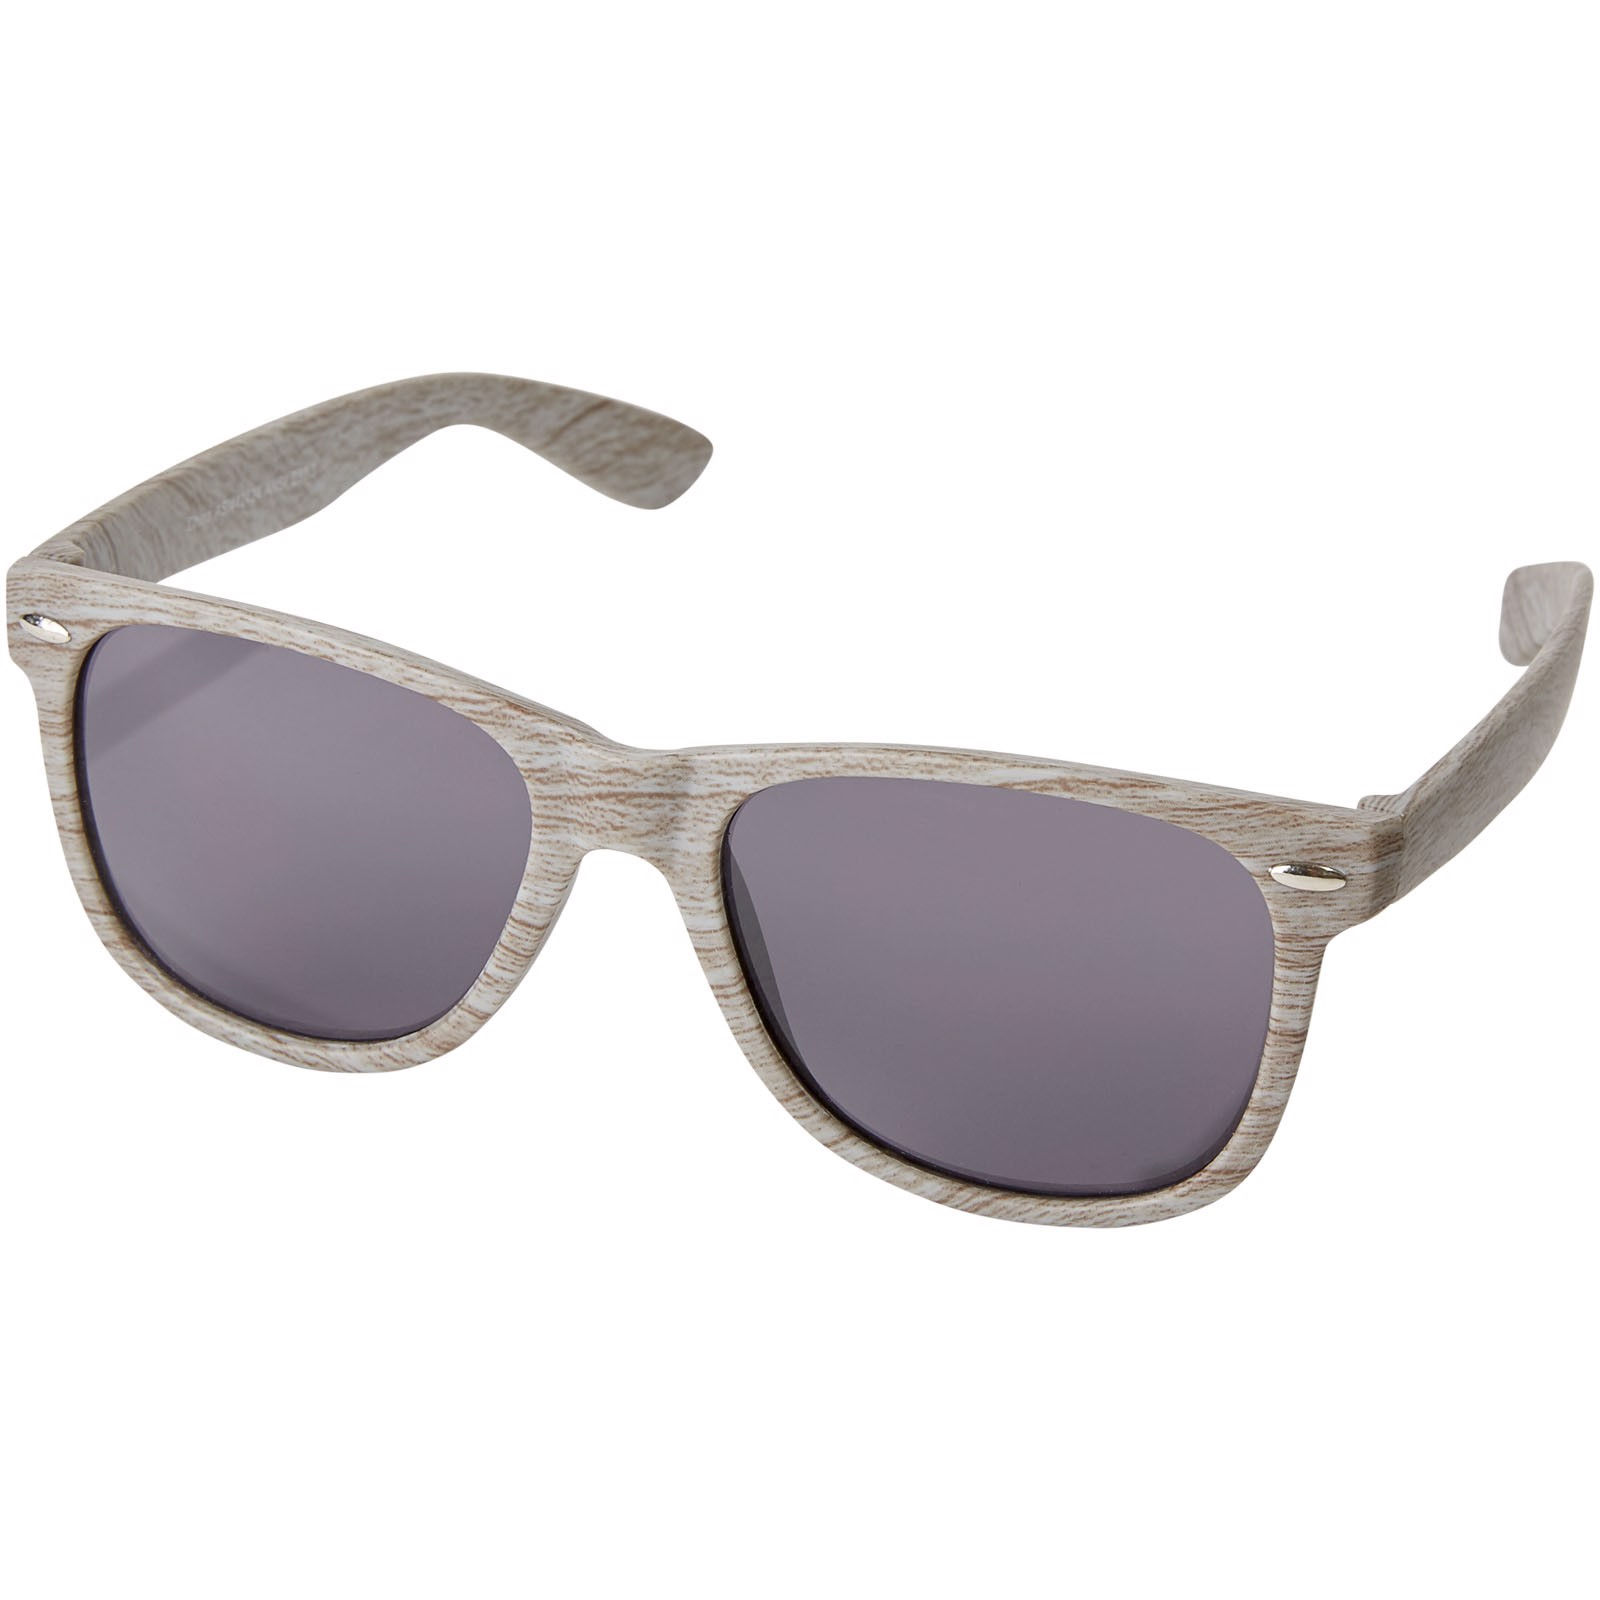 Allen sunglasses - Grey